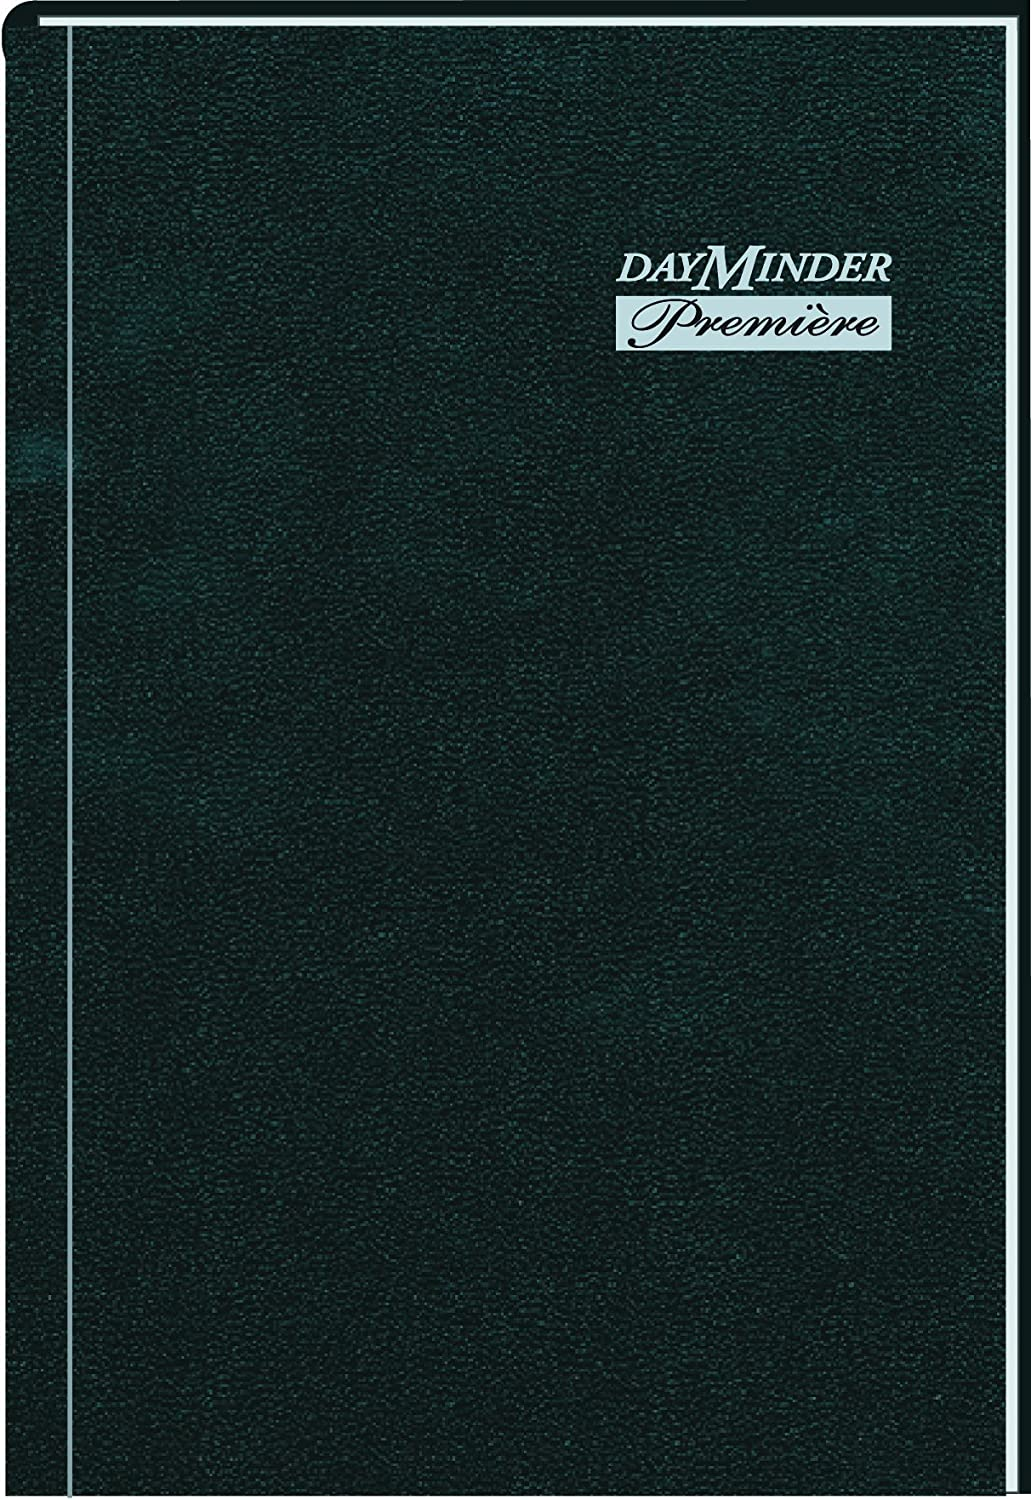 DayMinder Miami Mall 2014 Oakland Mall Premiere Hardcover Book Black Appointment Weekly